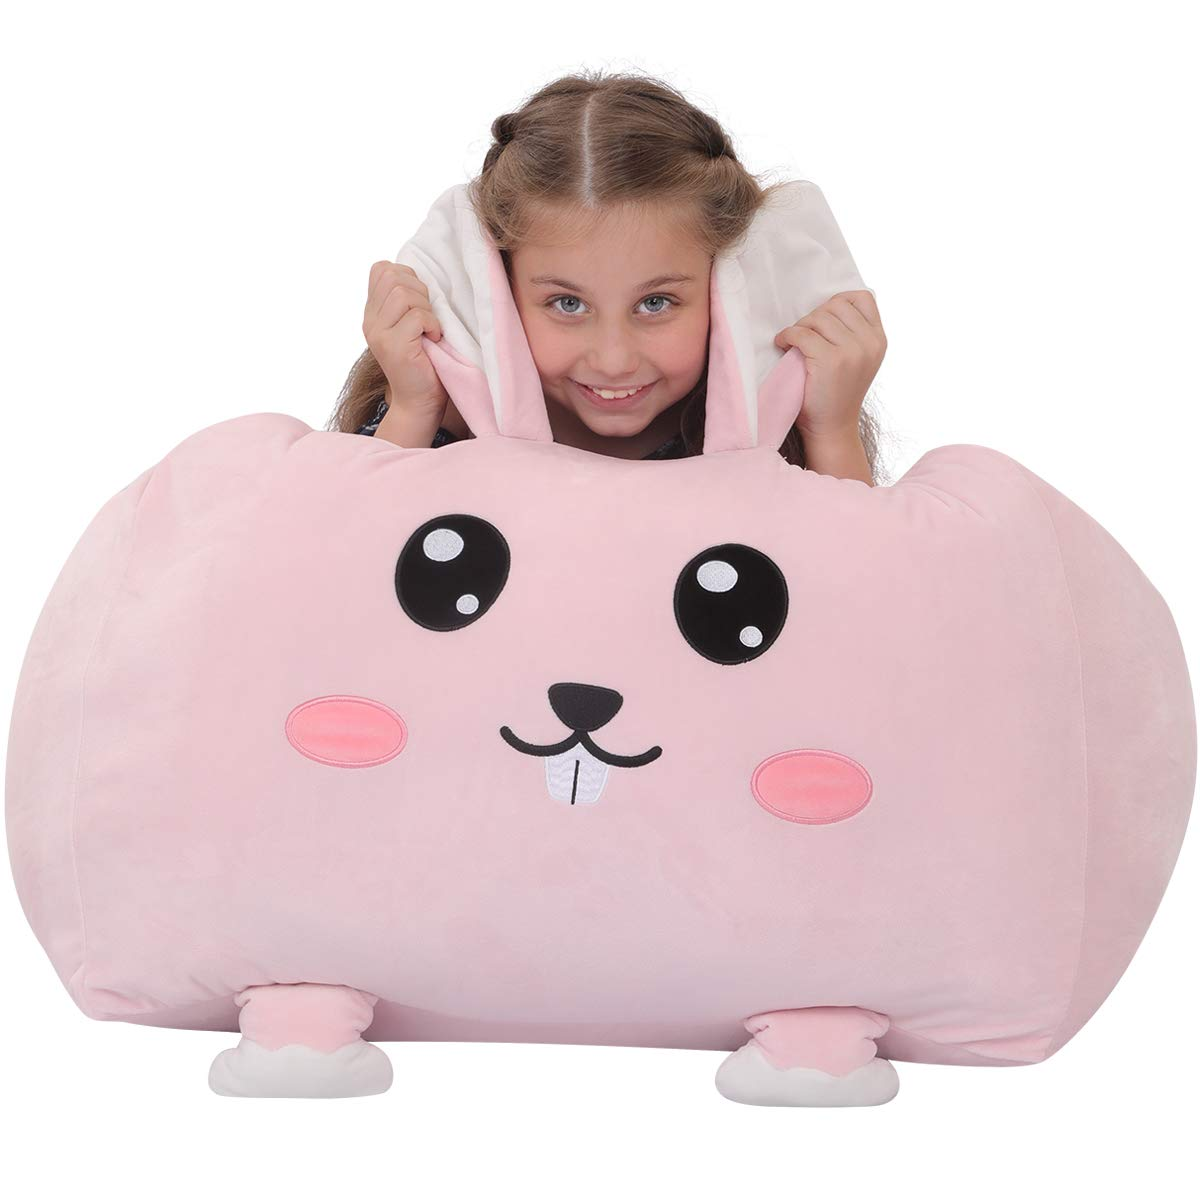 youngeyee Giant Rabbit Stuffed Animal Storage Kids Bean Bag Chair, 24x24x20 Inches Velvet Toy Organization and Storage Zipper Bags for Plush Toy Pillows Blankets Towels Clothes by youngeyee